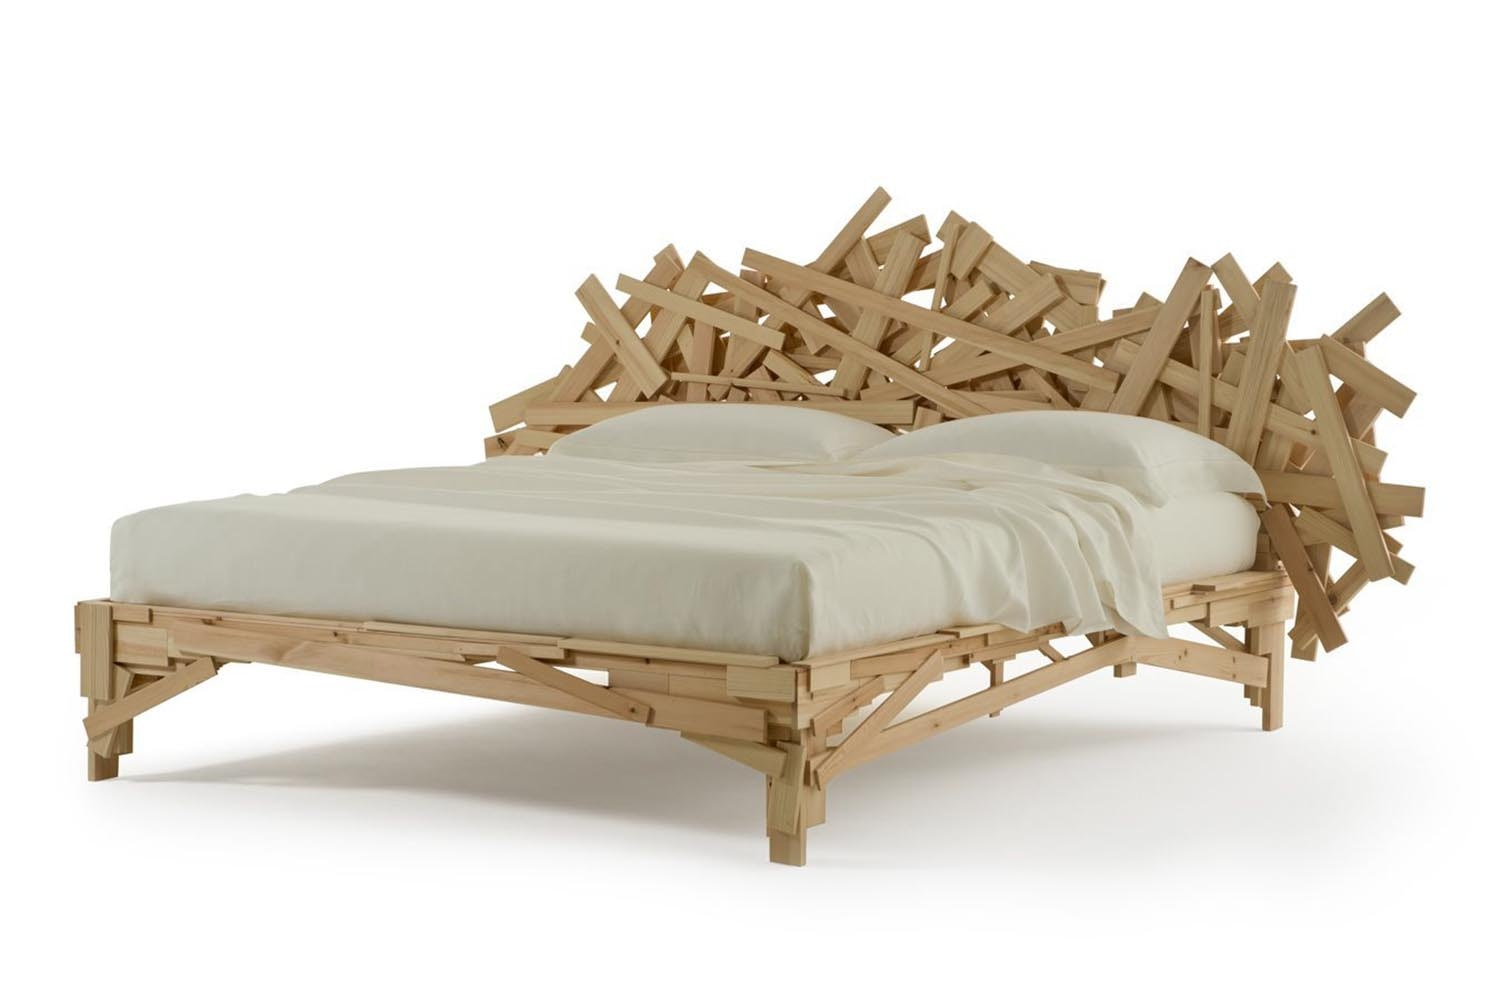 Favela Bed by F. e H. Campana for Edra